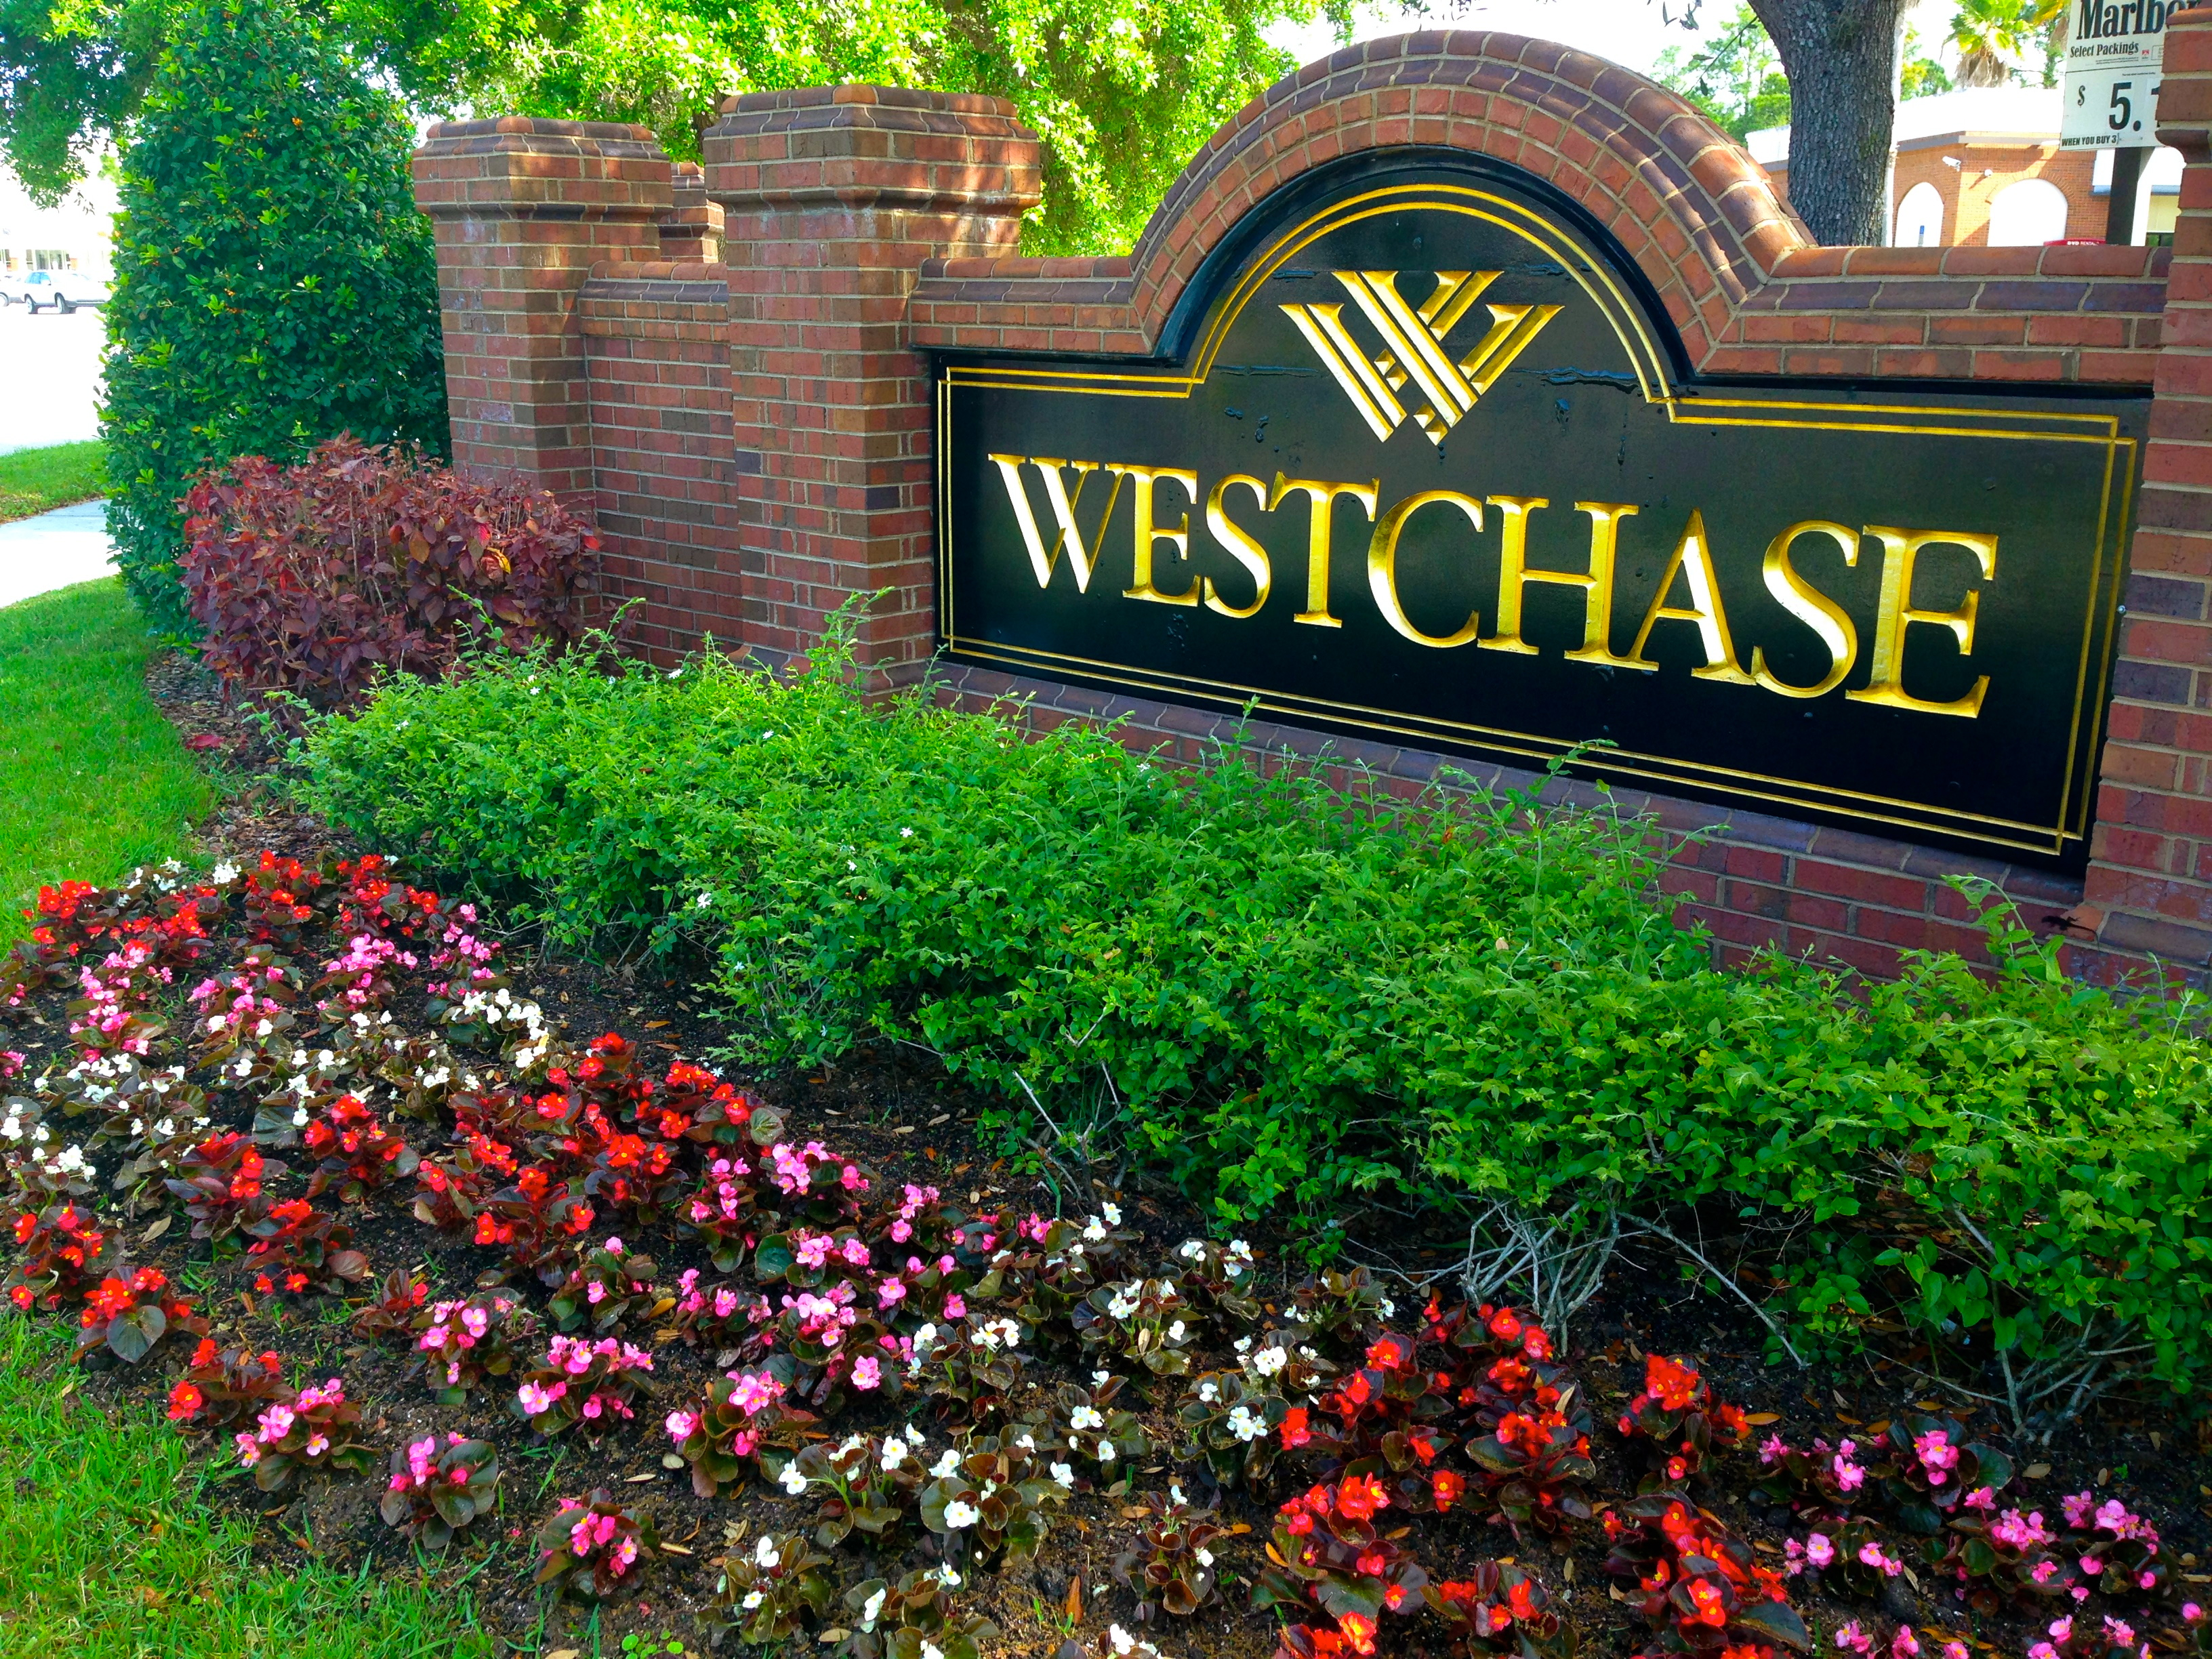 Westchase A Premier And Highly Desirable Community In